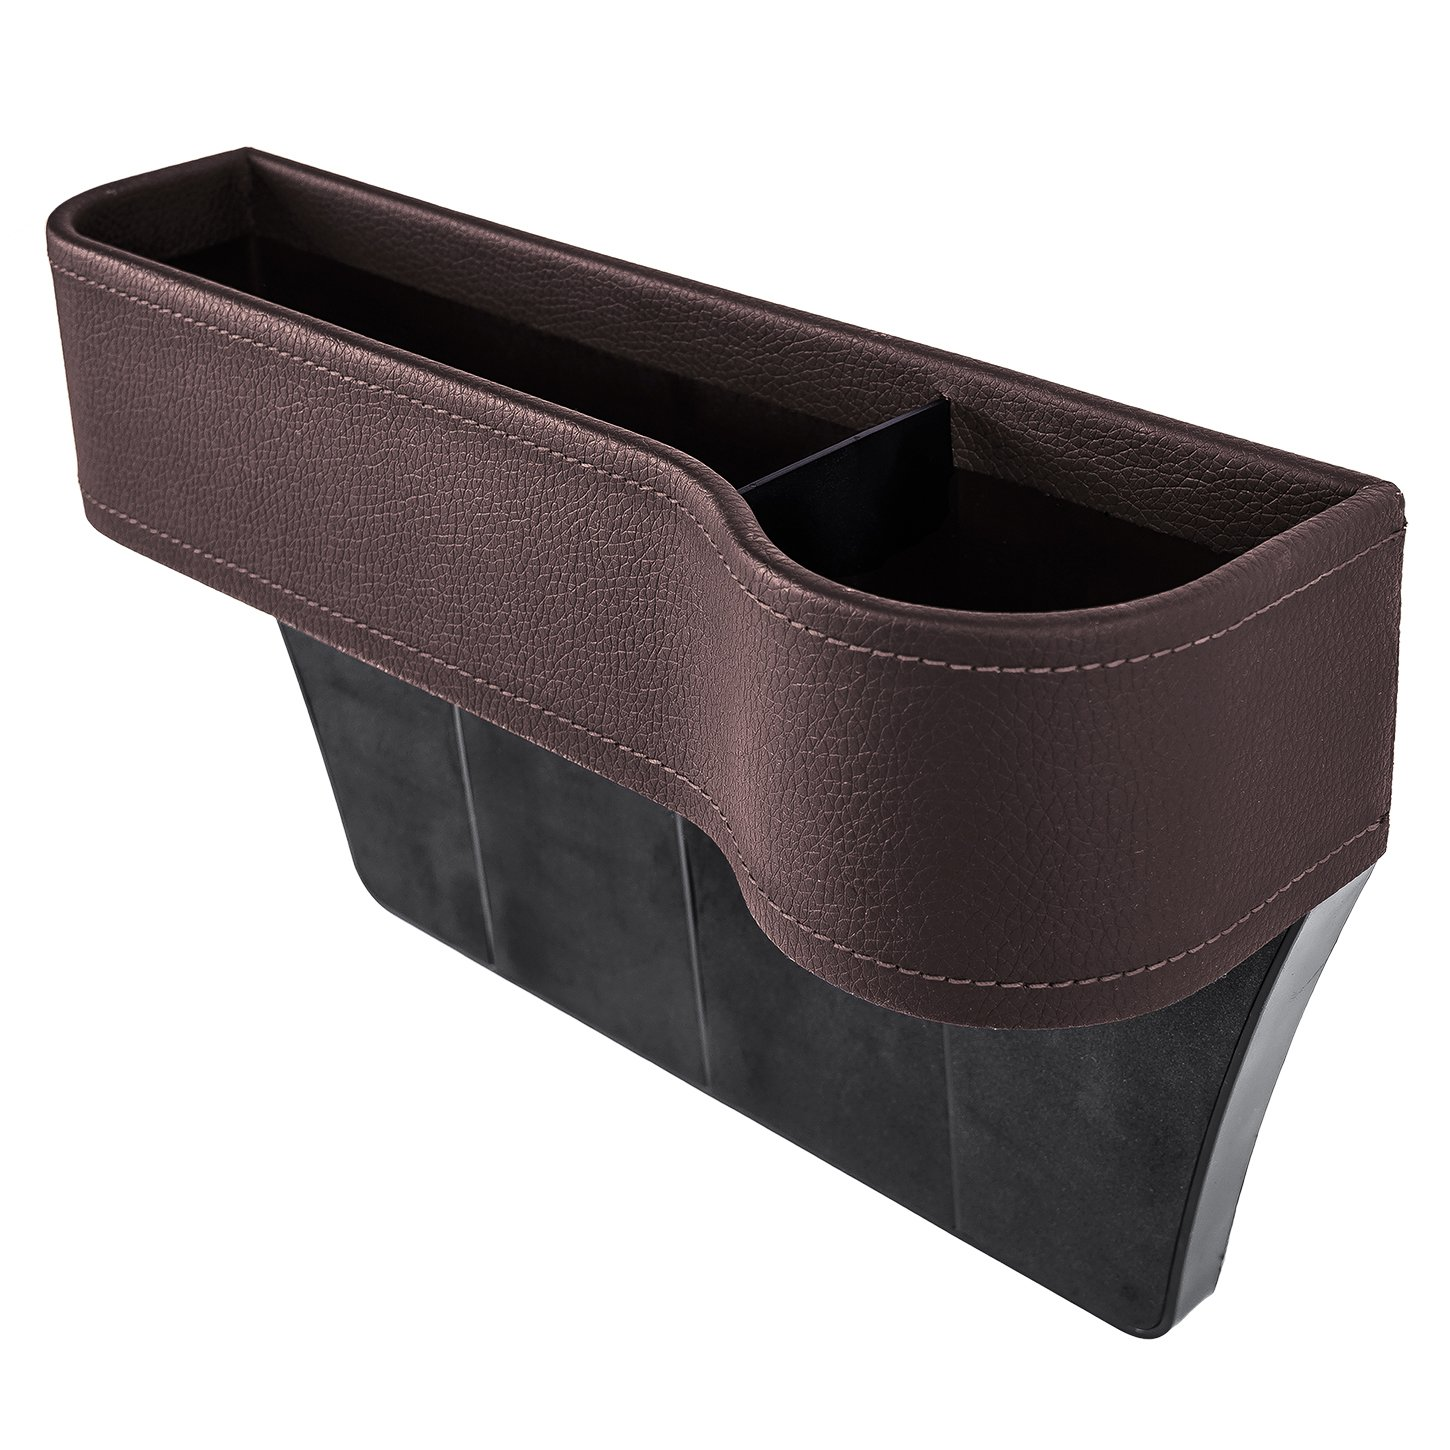 AV SUPPLY Car Side Seat Organizer w/ Cup Holder For Drinks Key Wallet Phone Sunglasses, Leather, Brown